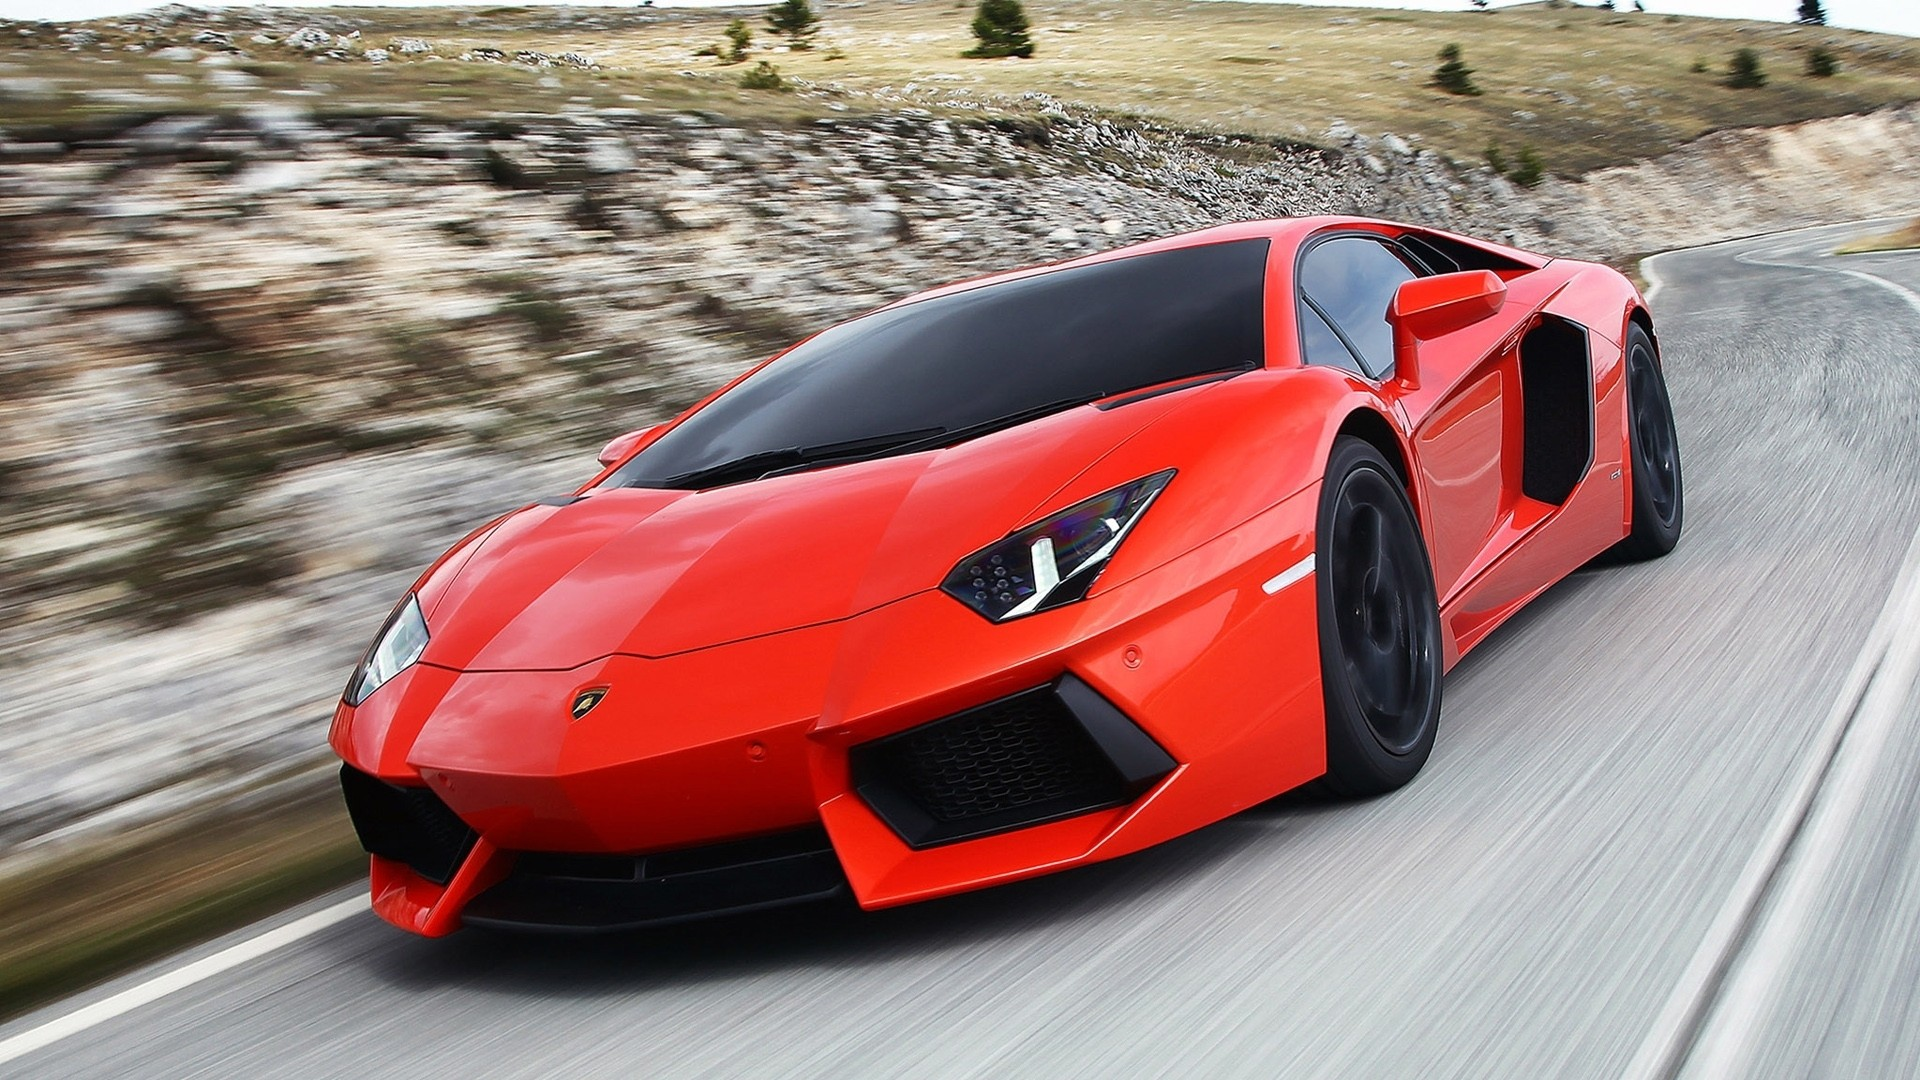 1920x1080 Lamborghini Aventador Cars Desktop Pc And Mac Wallpaper